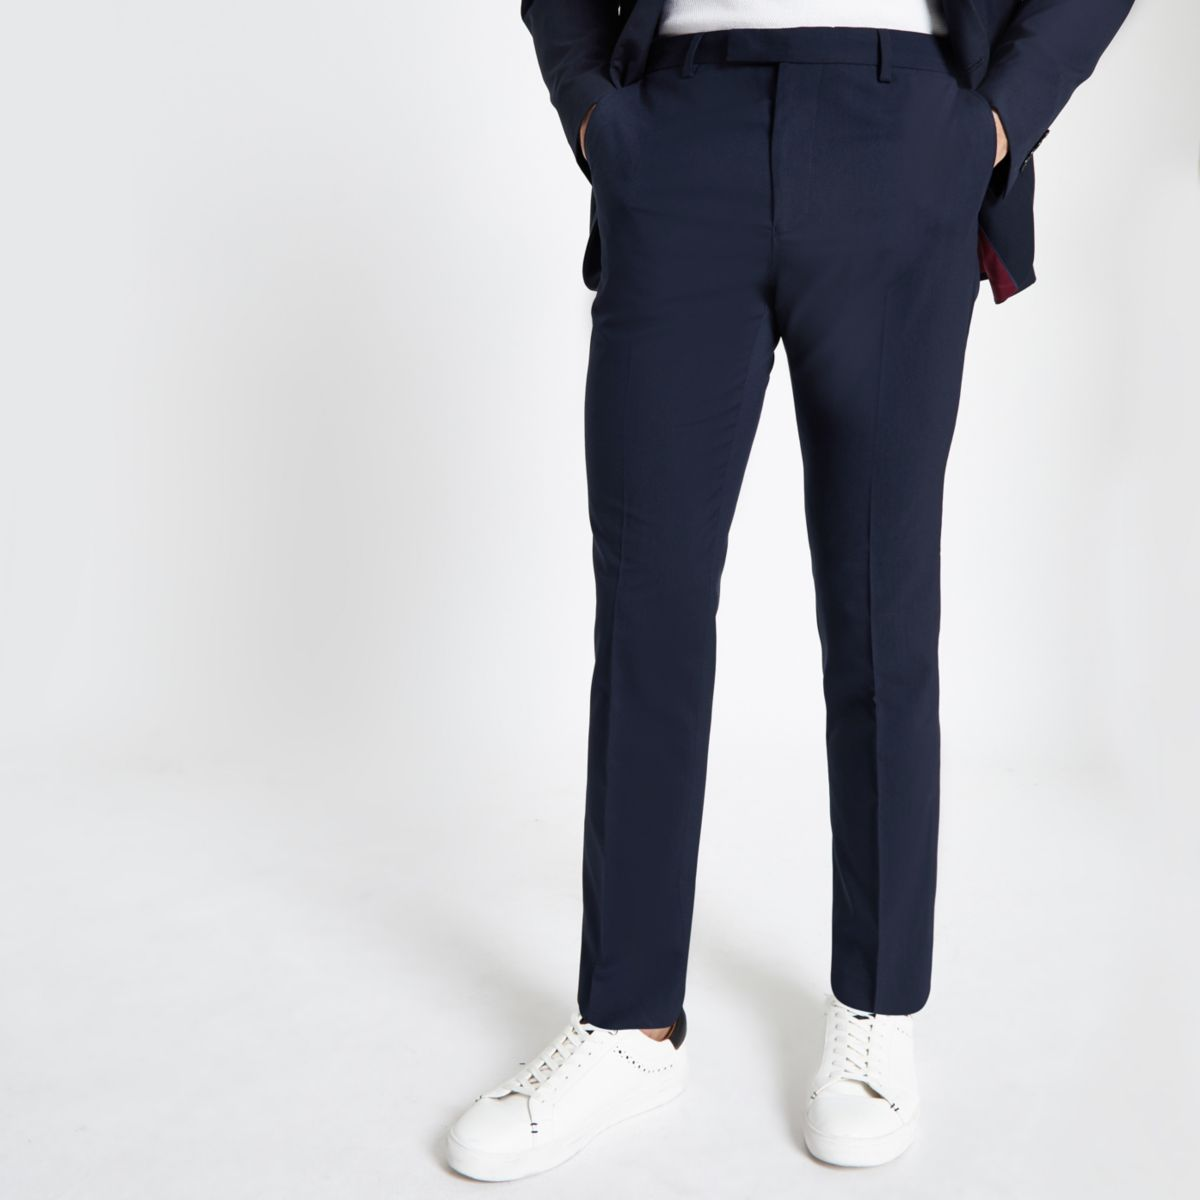 Navy slim fit suit pants